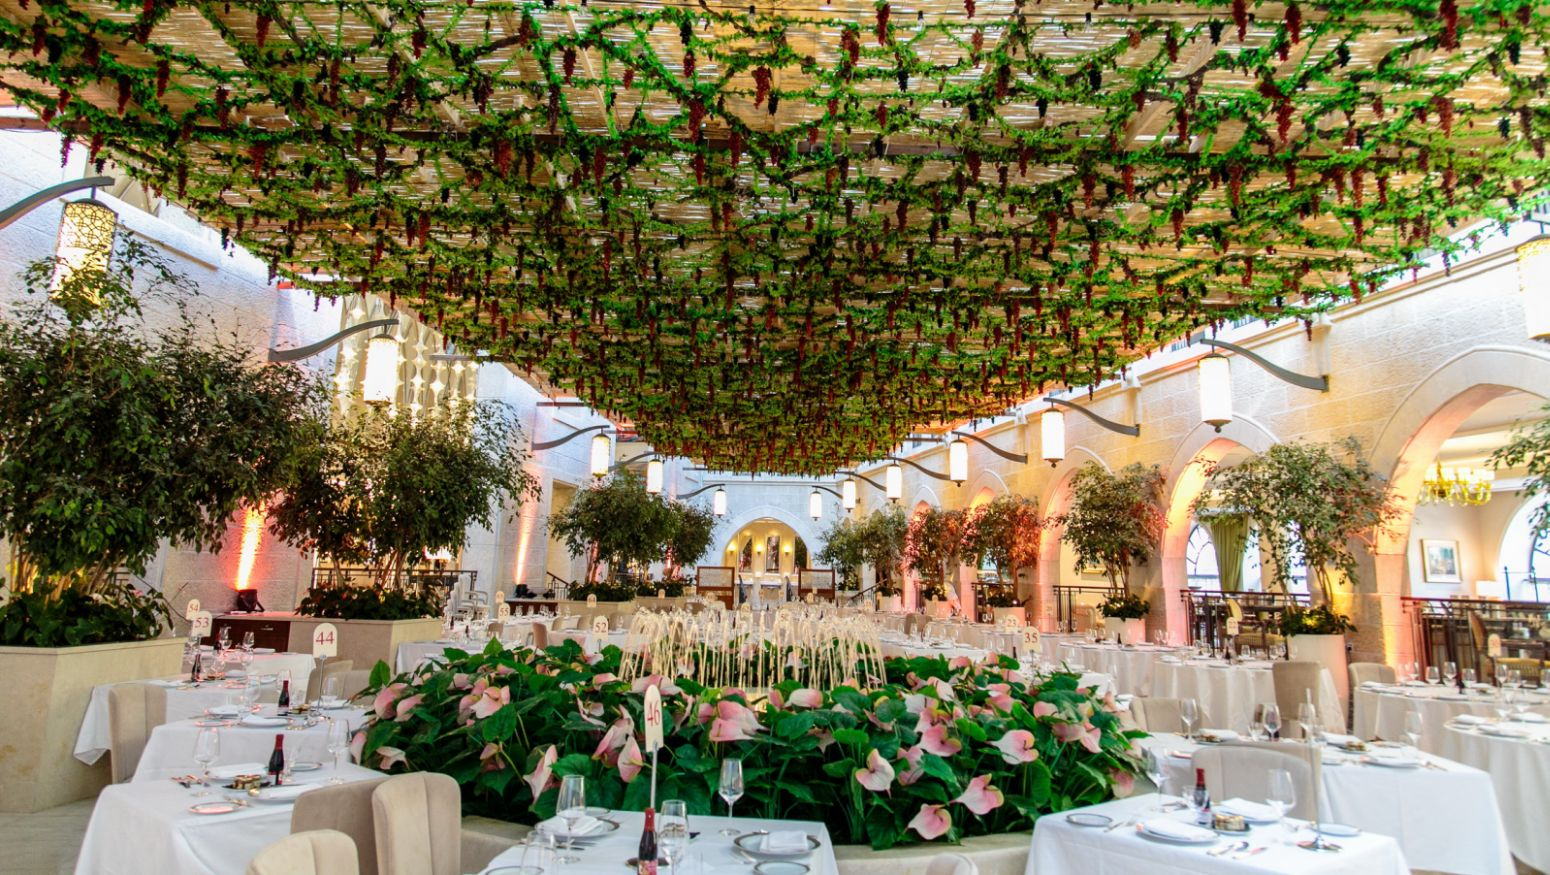 9 Of The Most Beautiful Sukkot In Israel Israel21c